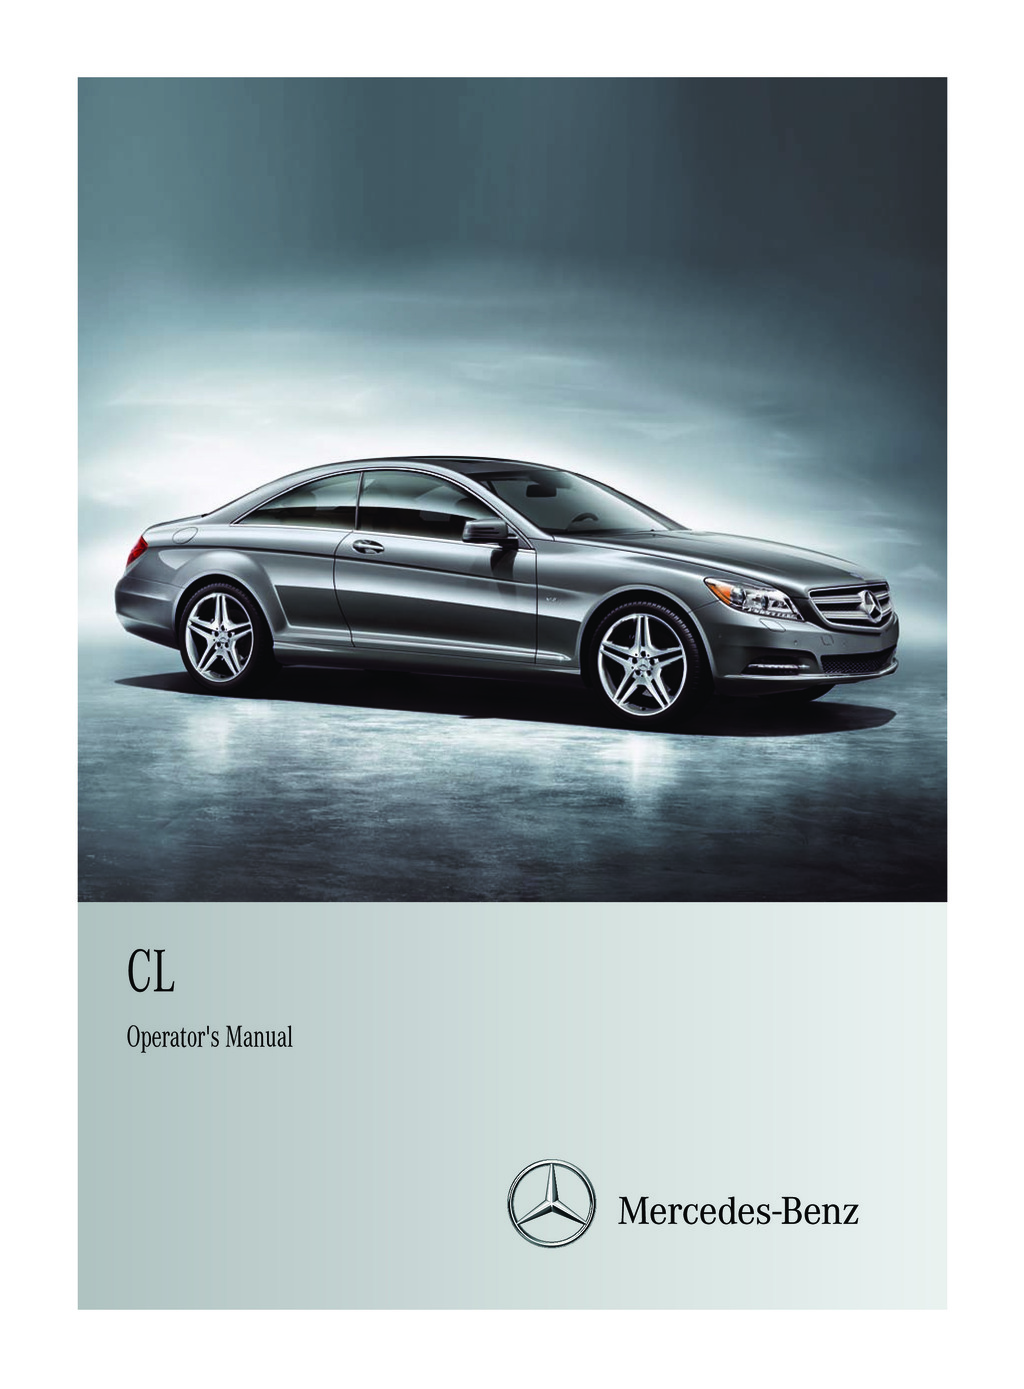 2012 Mercedes-Benz CL Class owners manual